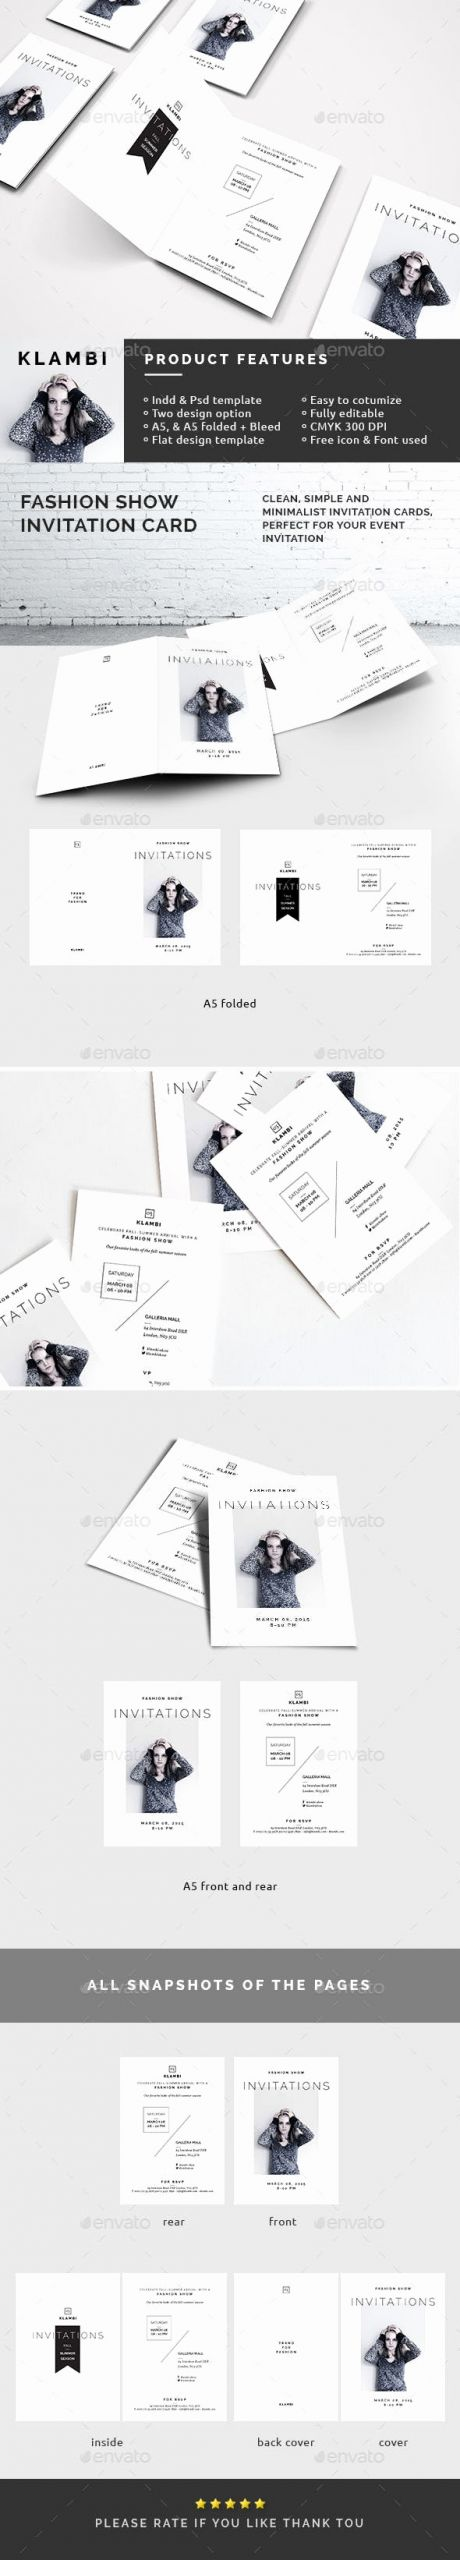 Fashion Show Invitation Template Best Of Fashion Show Invitation Template by Boxkayu